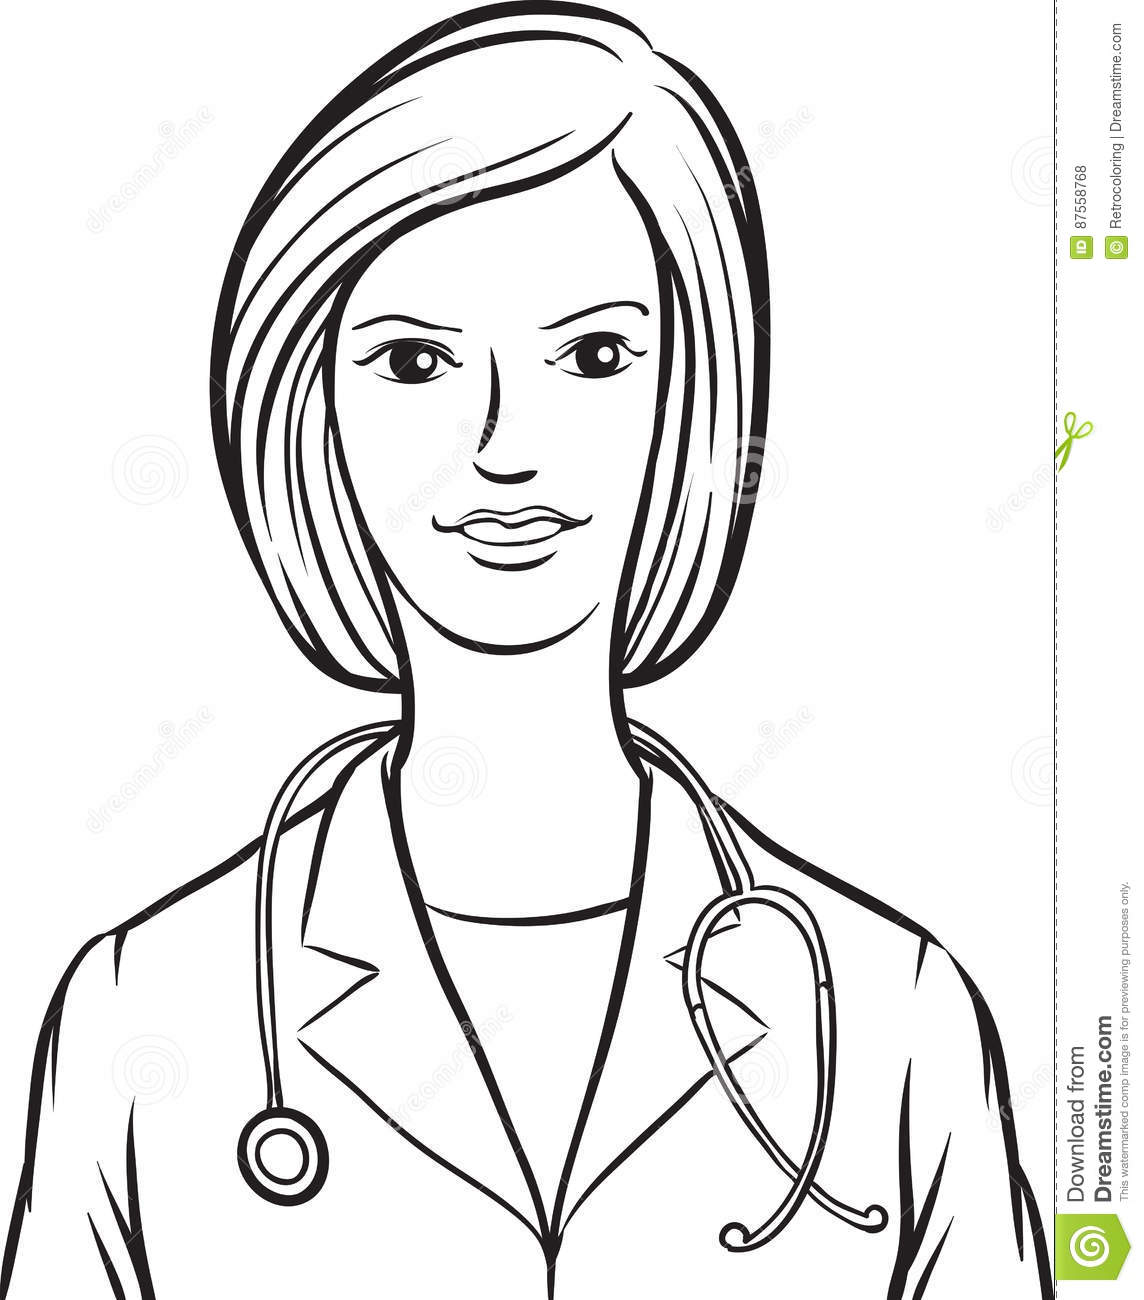 Line Drawing Of A Doctor : Whiteboard drawing doctor woman stock vector image